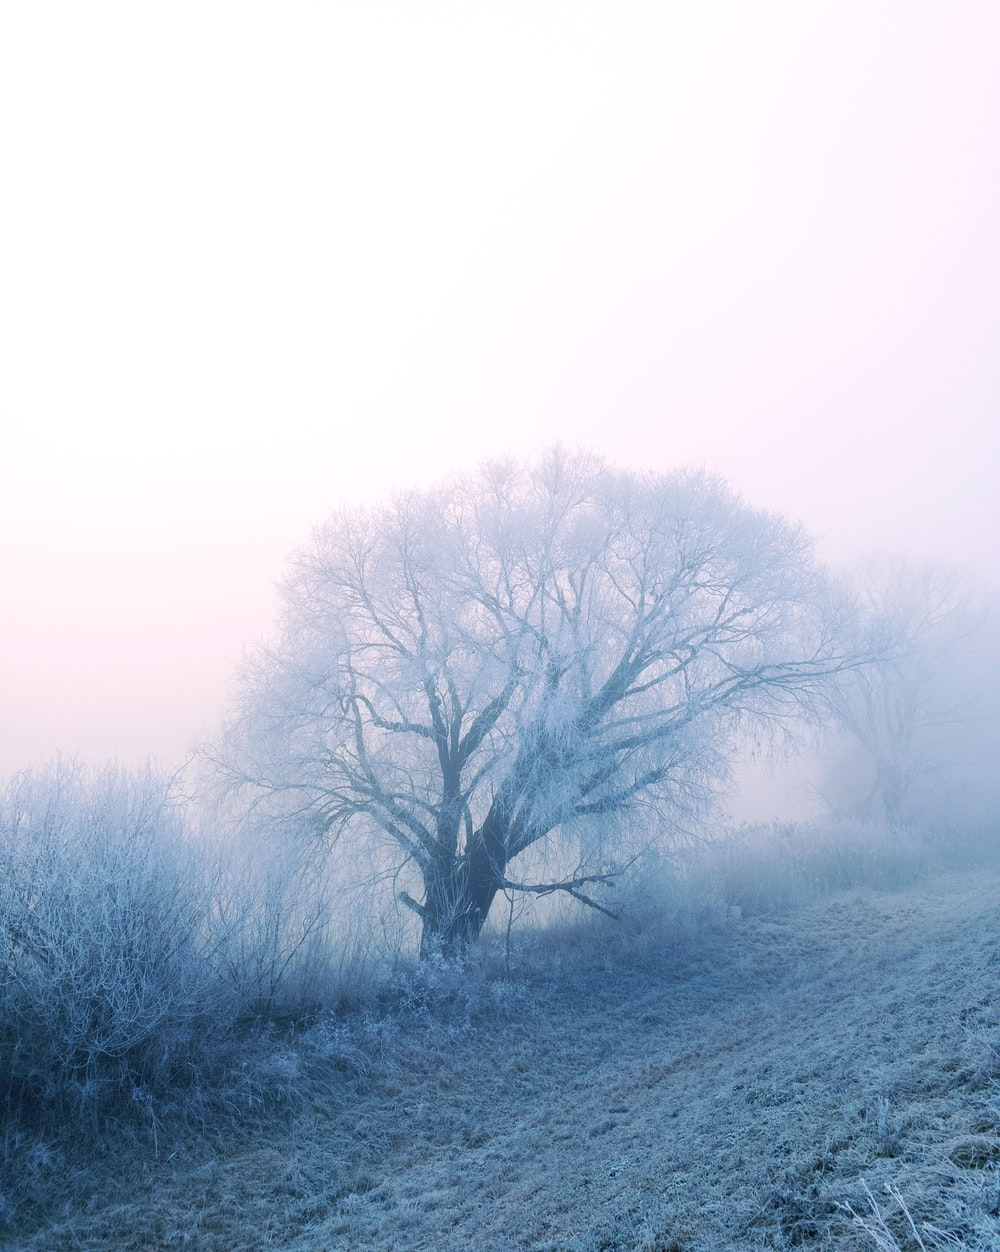 tree surrounded by fogs